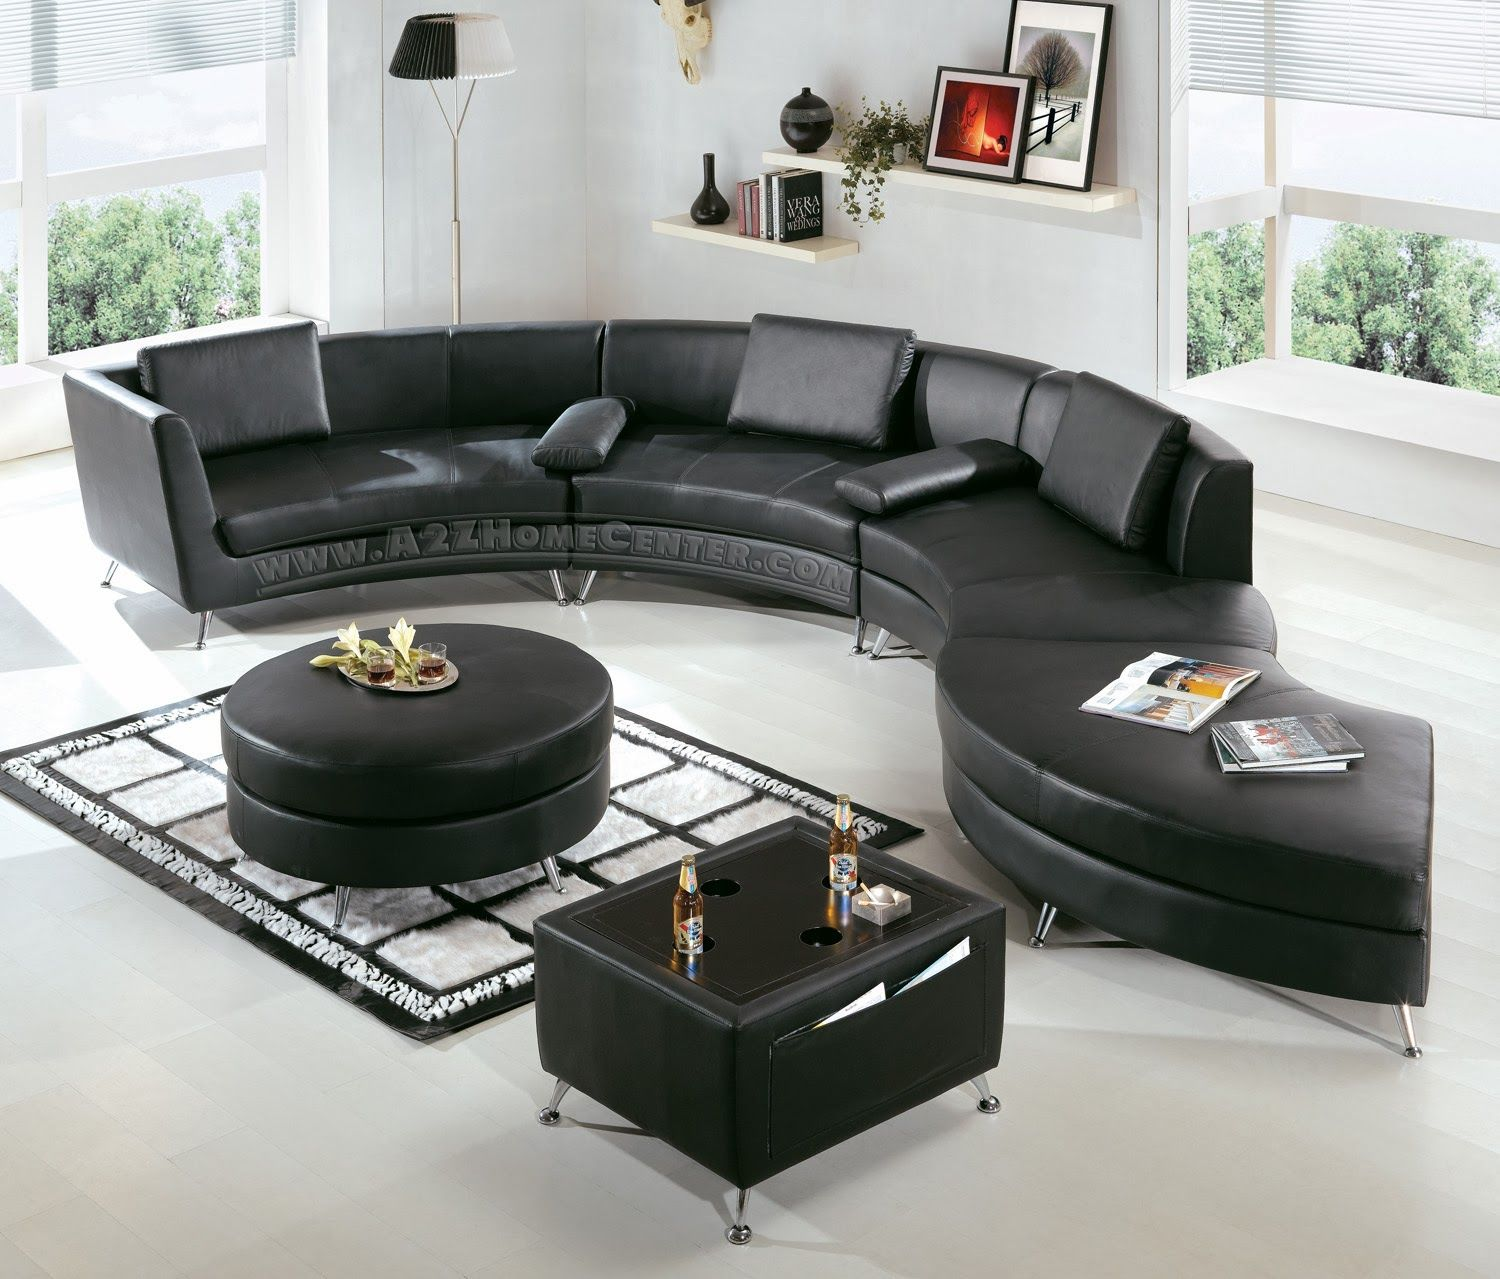 A Sectional Sofa Typically Comes In The Pieces Like, The Central Section  Without Arms,